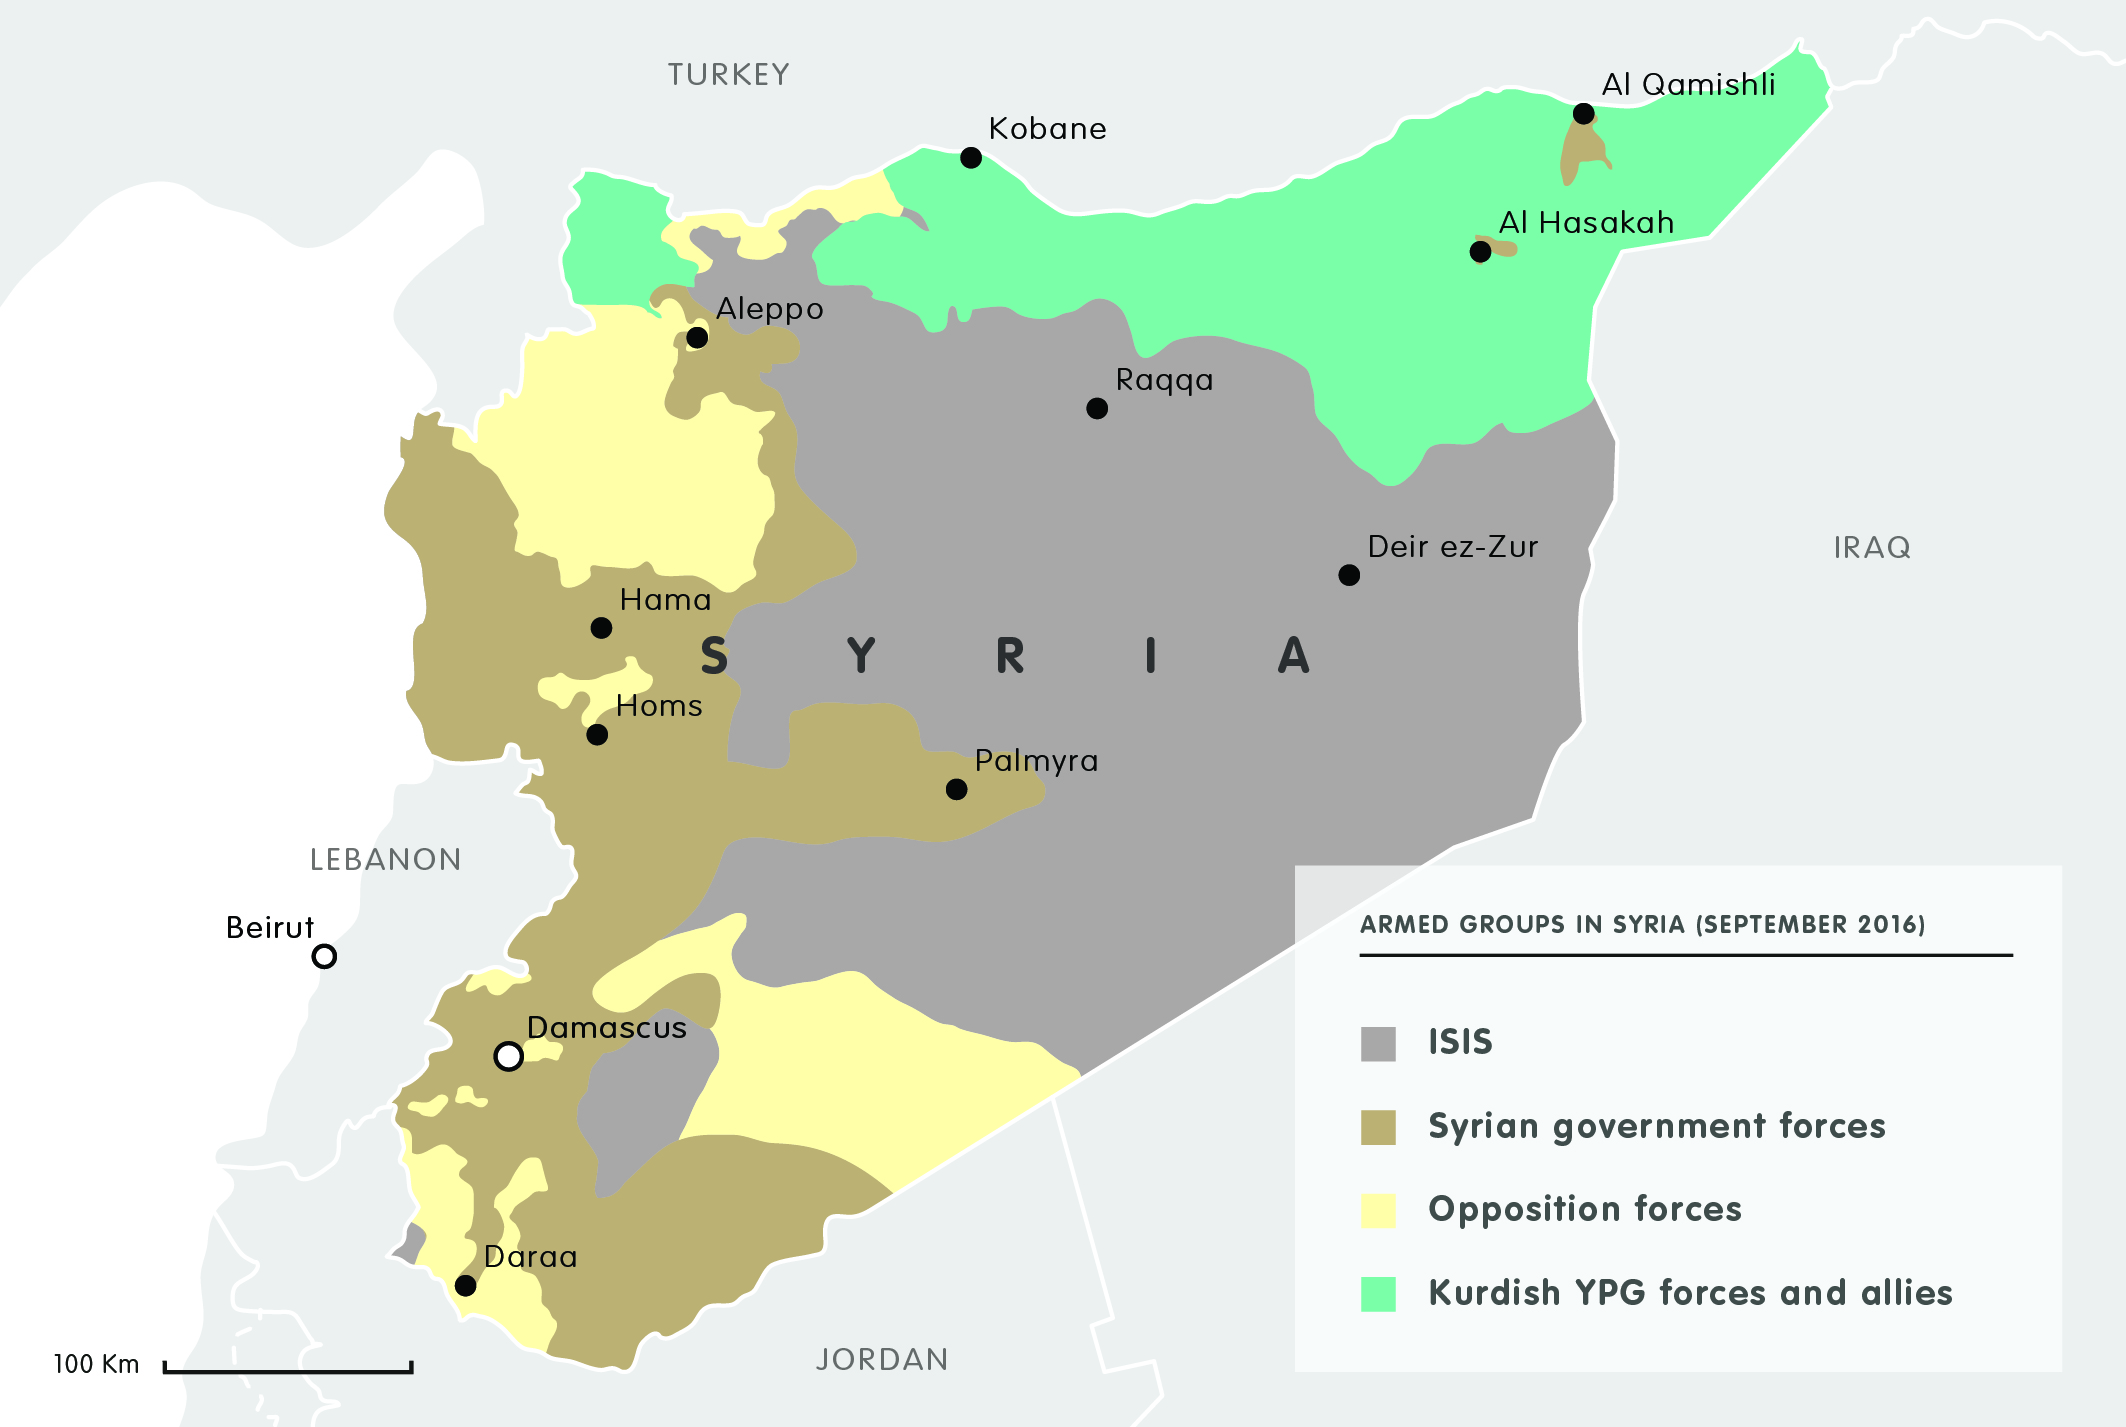 Armed groups in Syria (September 2016)